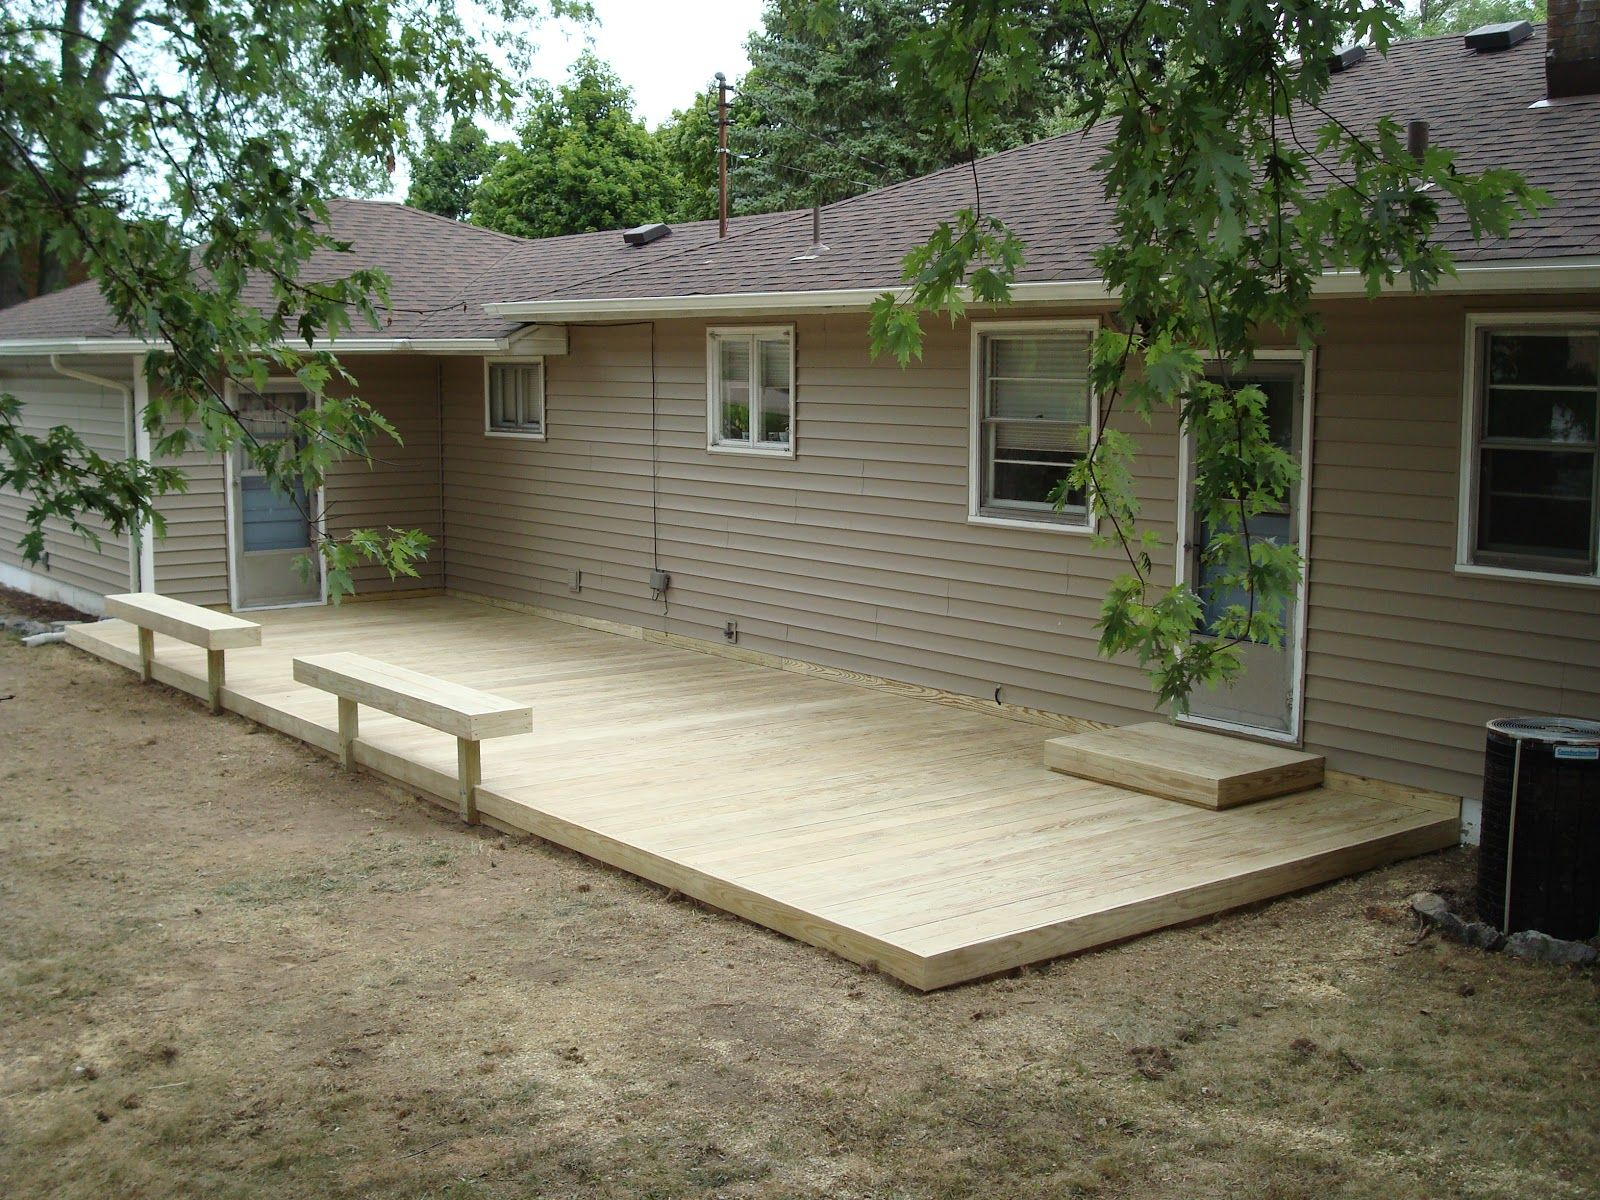 Decking Using Pallets Chic Building Ground Level Deck Yard Porch Deck Patio Scapes